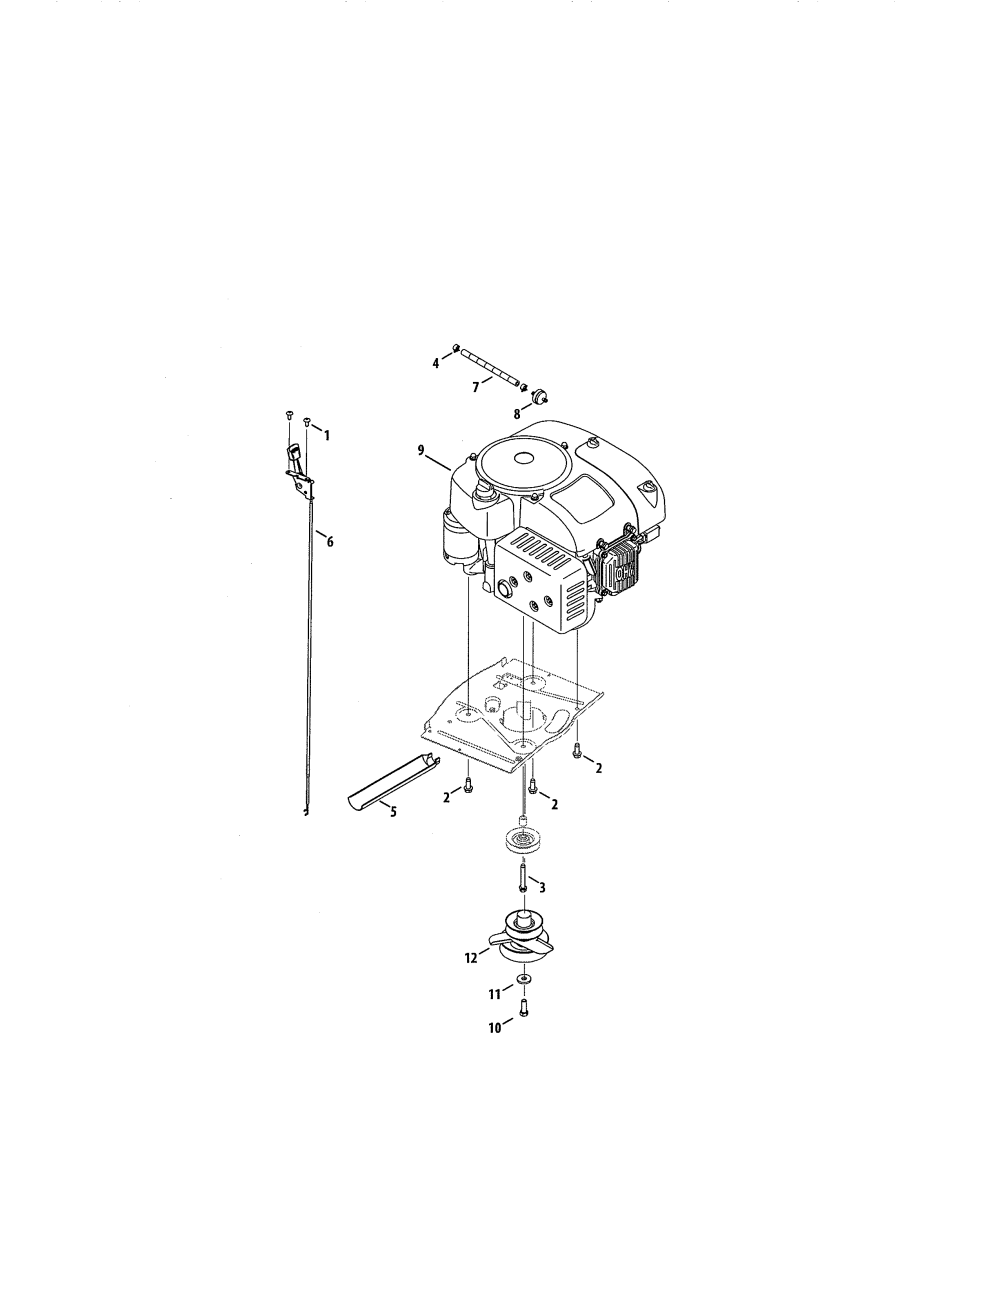 medium resolution of craftsman 247290001 engine diagram